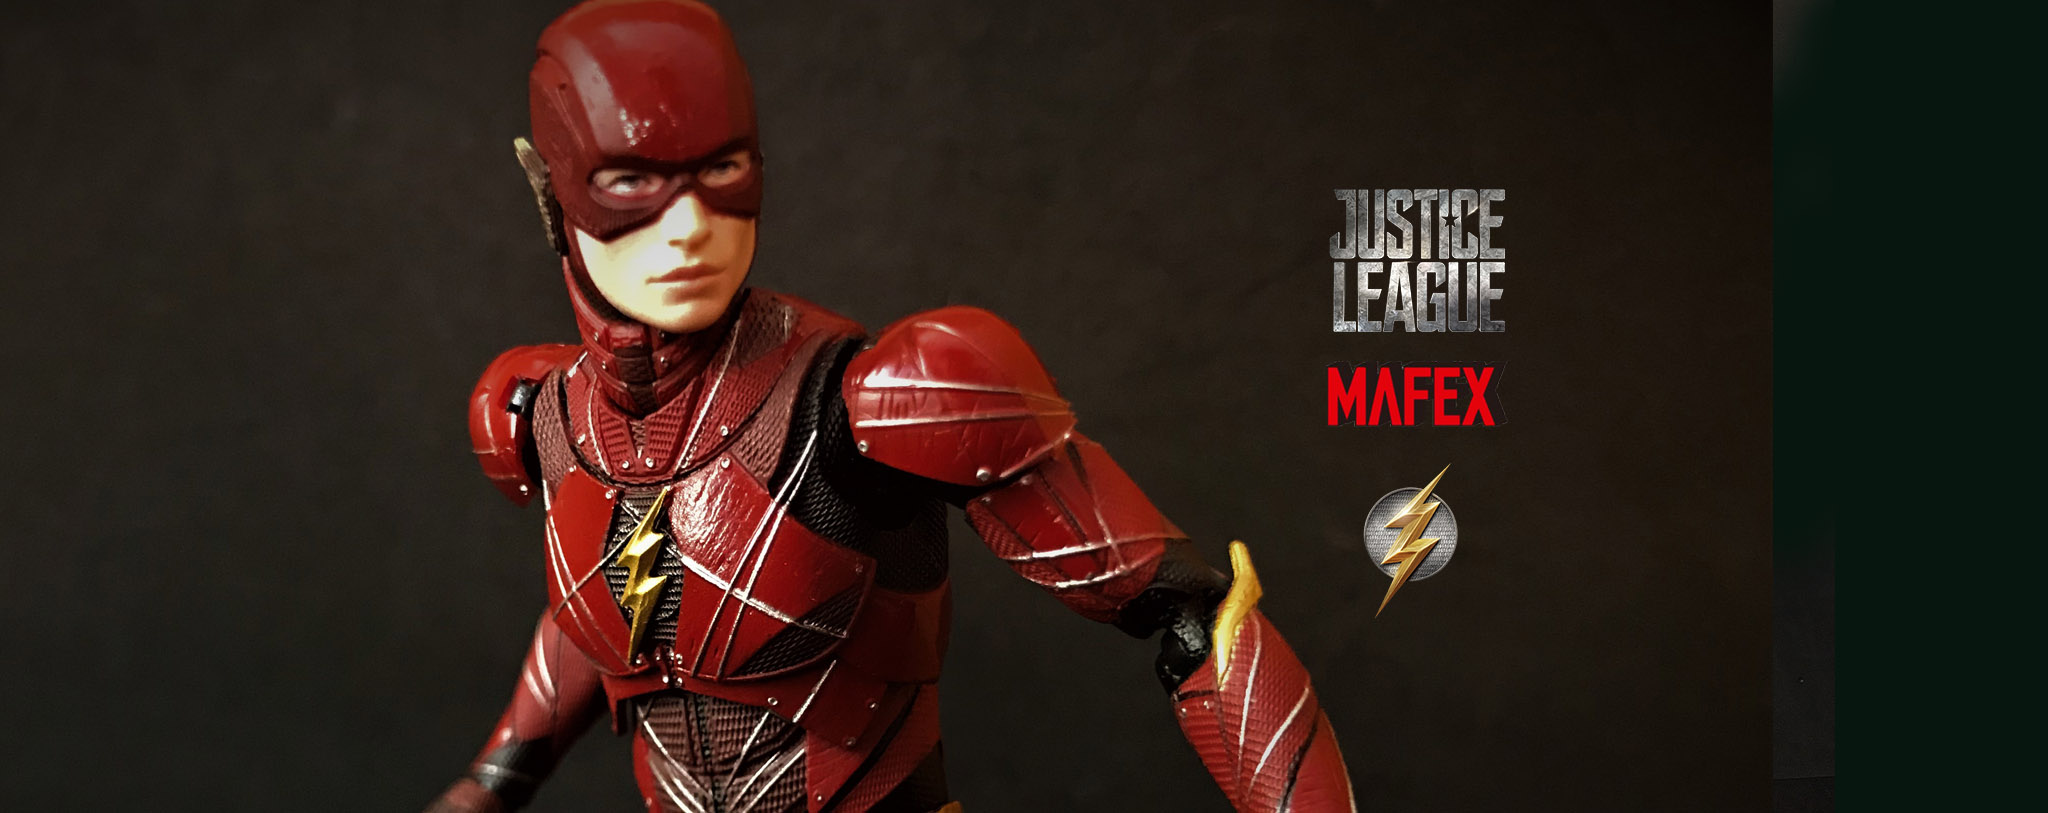 Recensione: The Flash JL Mafex di Medicom Toy